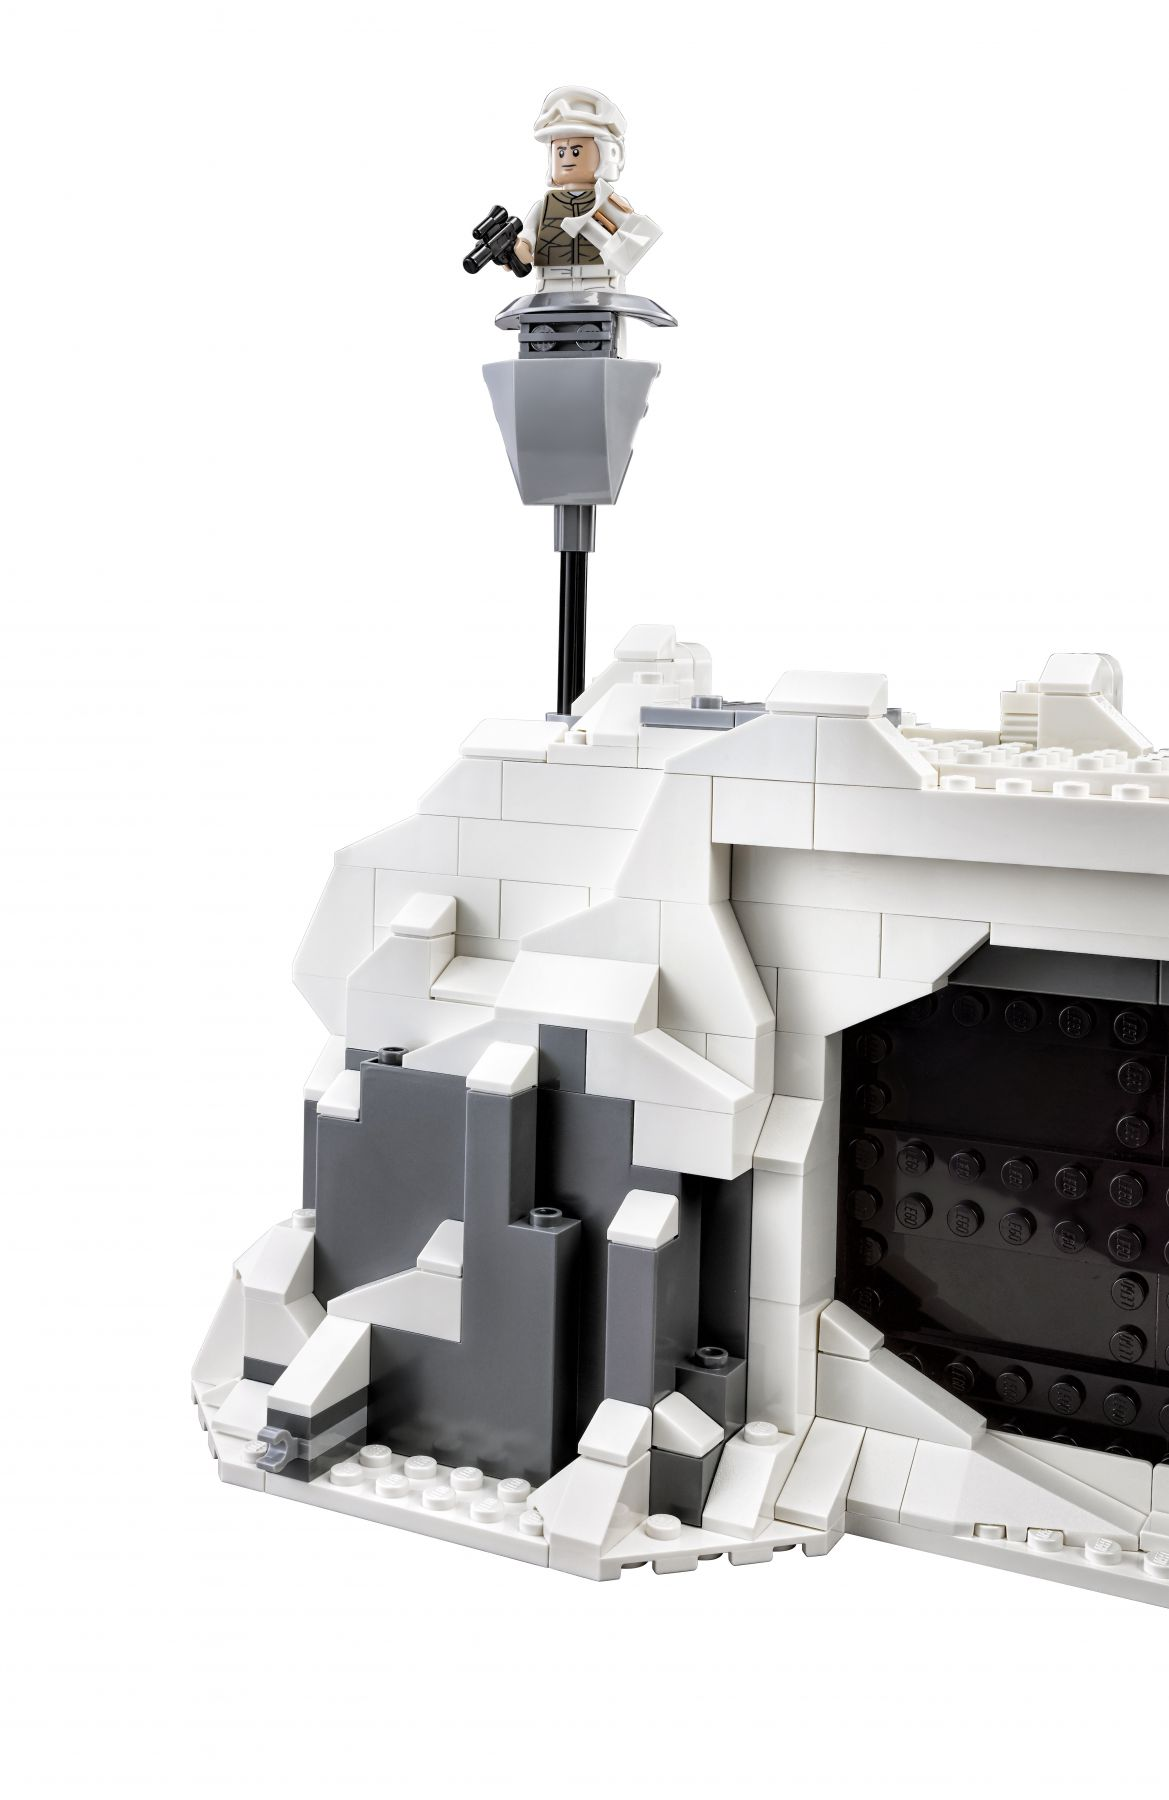 LEGO Star Wars 75098 Angriff auf Hoth™ LEGO-75098-Assault-on-Hoth-Func_002_01.jpg